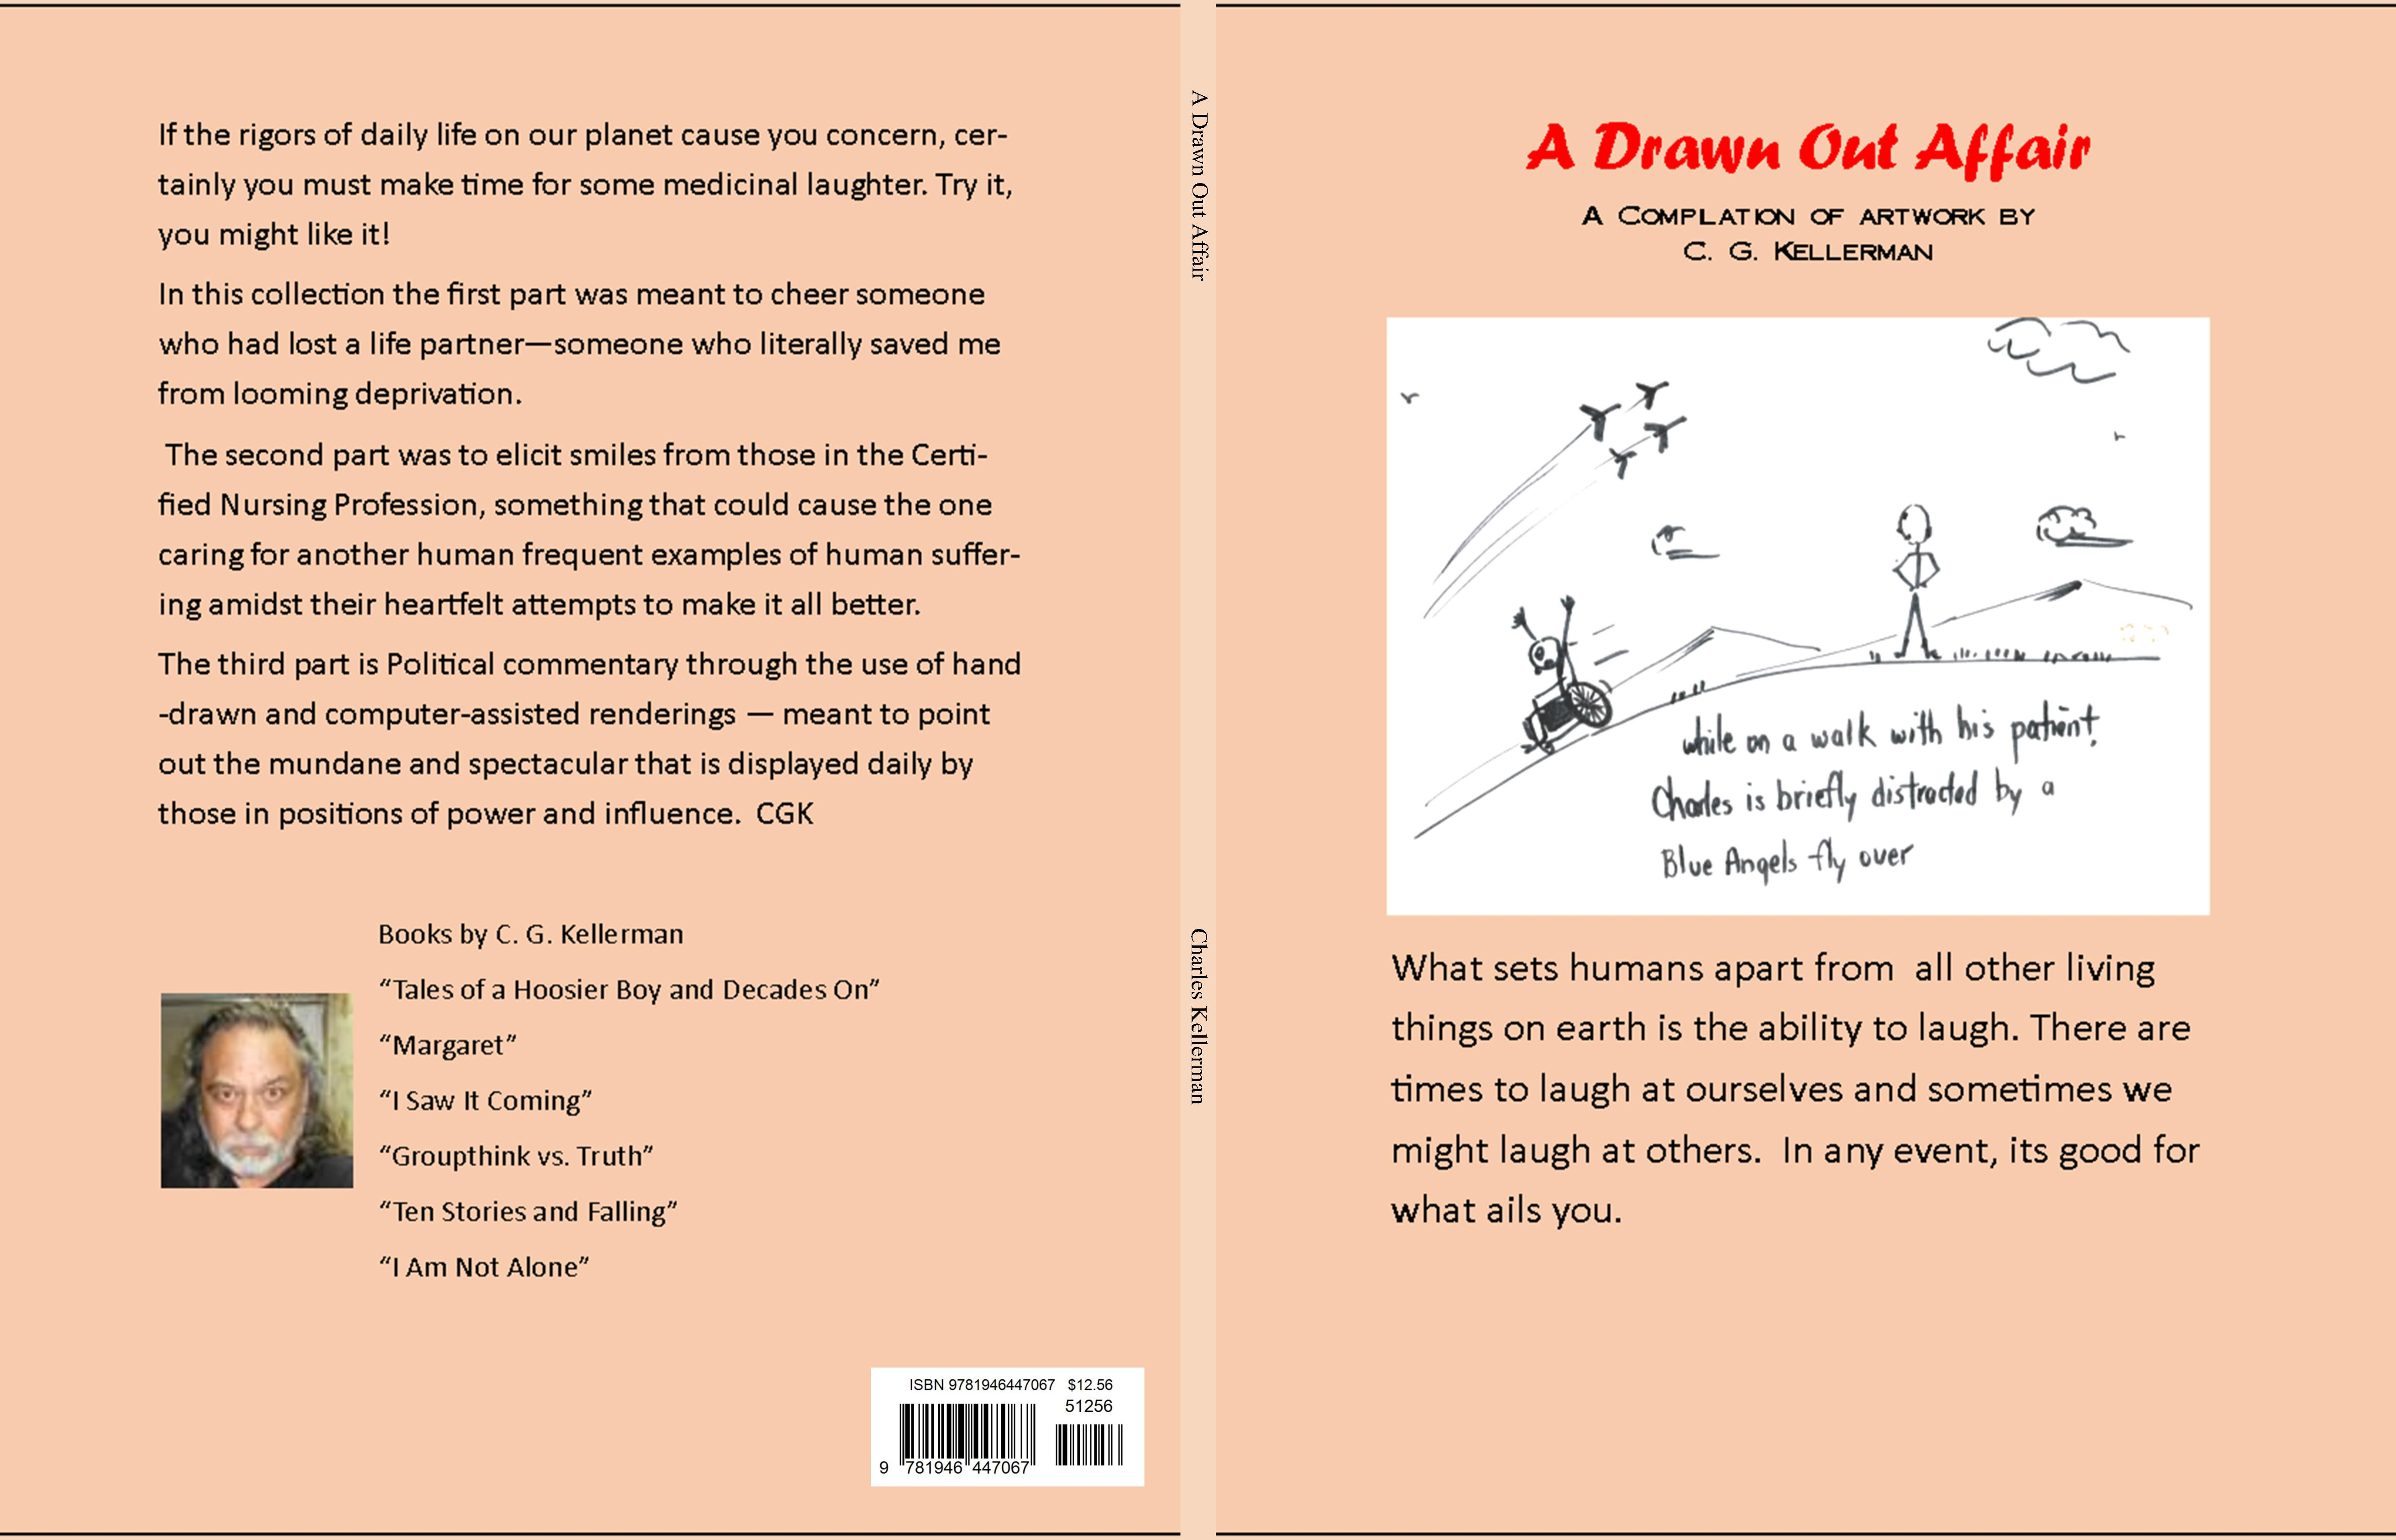 A Drawn Out Affair cover image